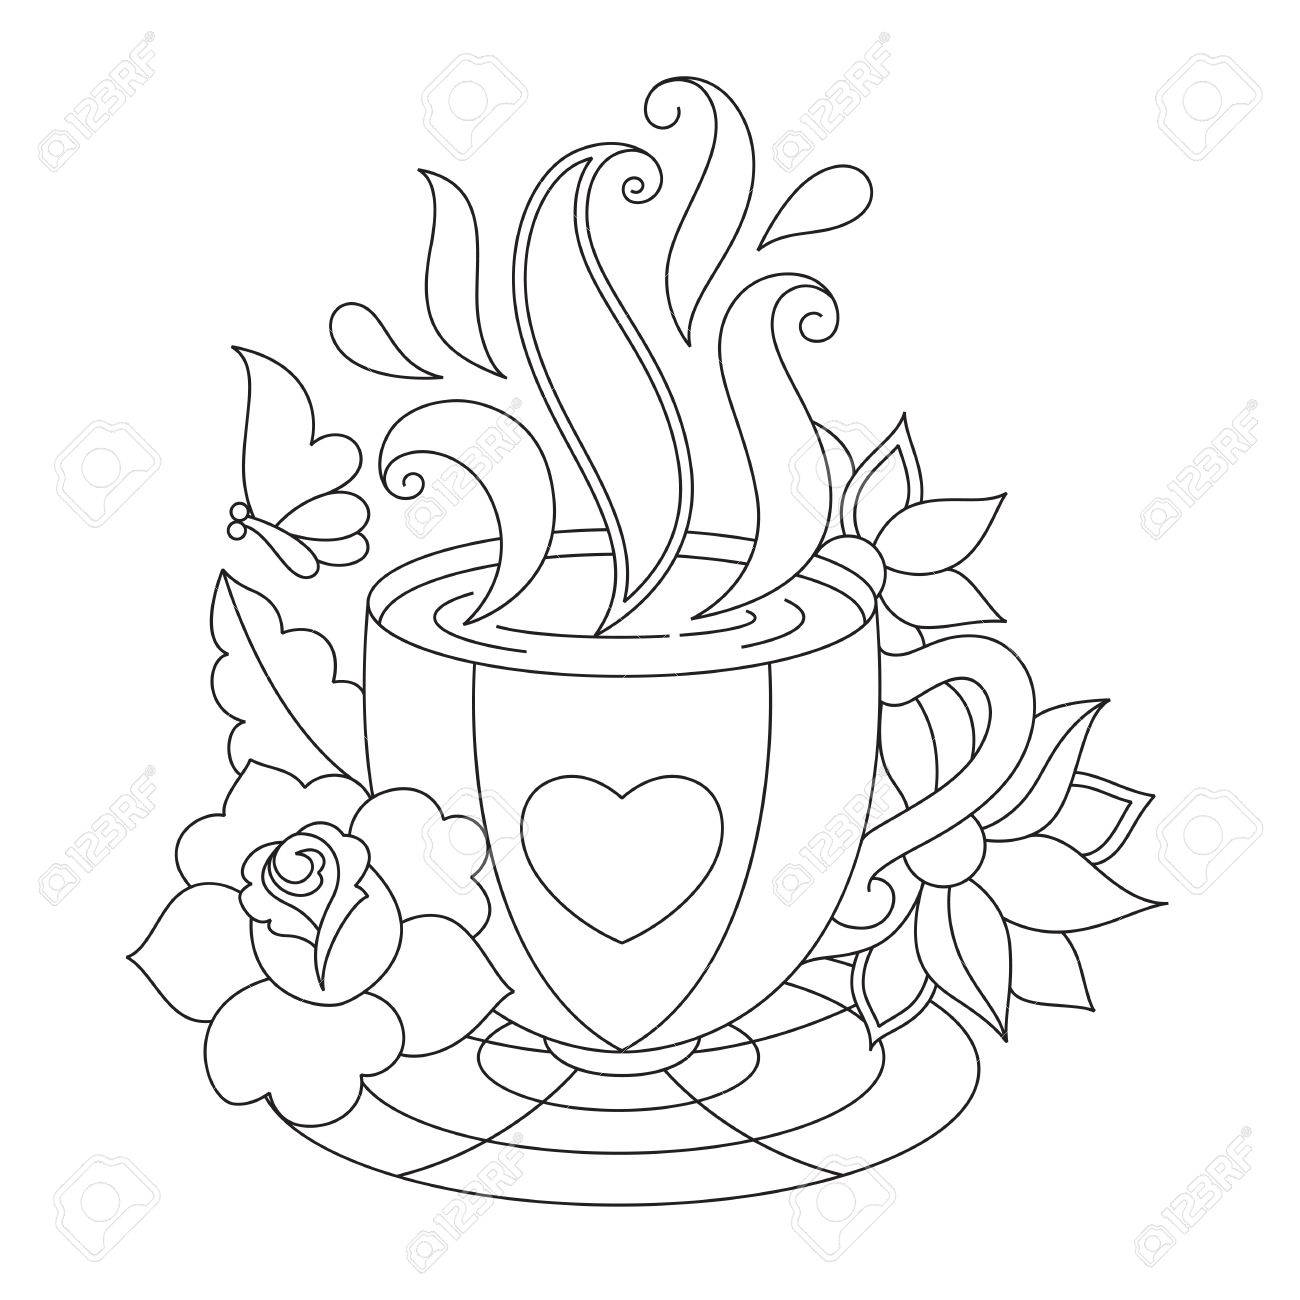 Coffee Or Tea Cup Coloring Pages Stylized Illustration For